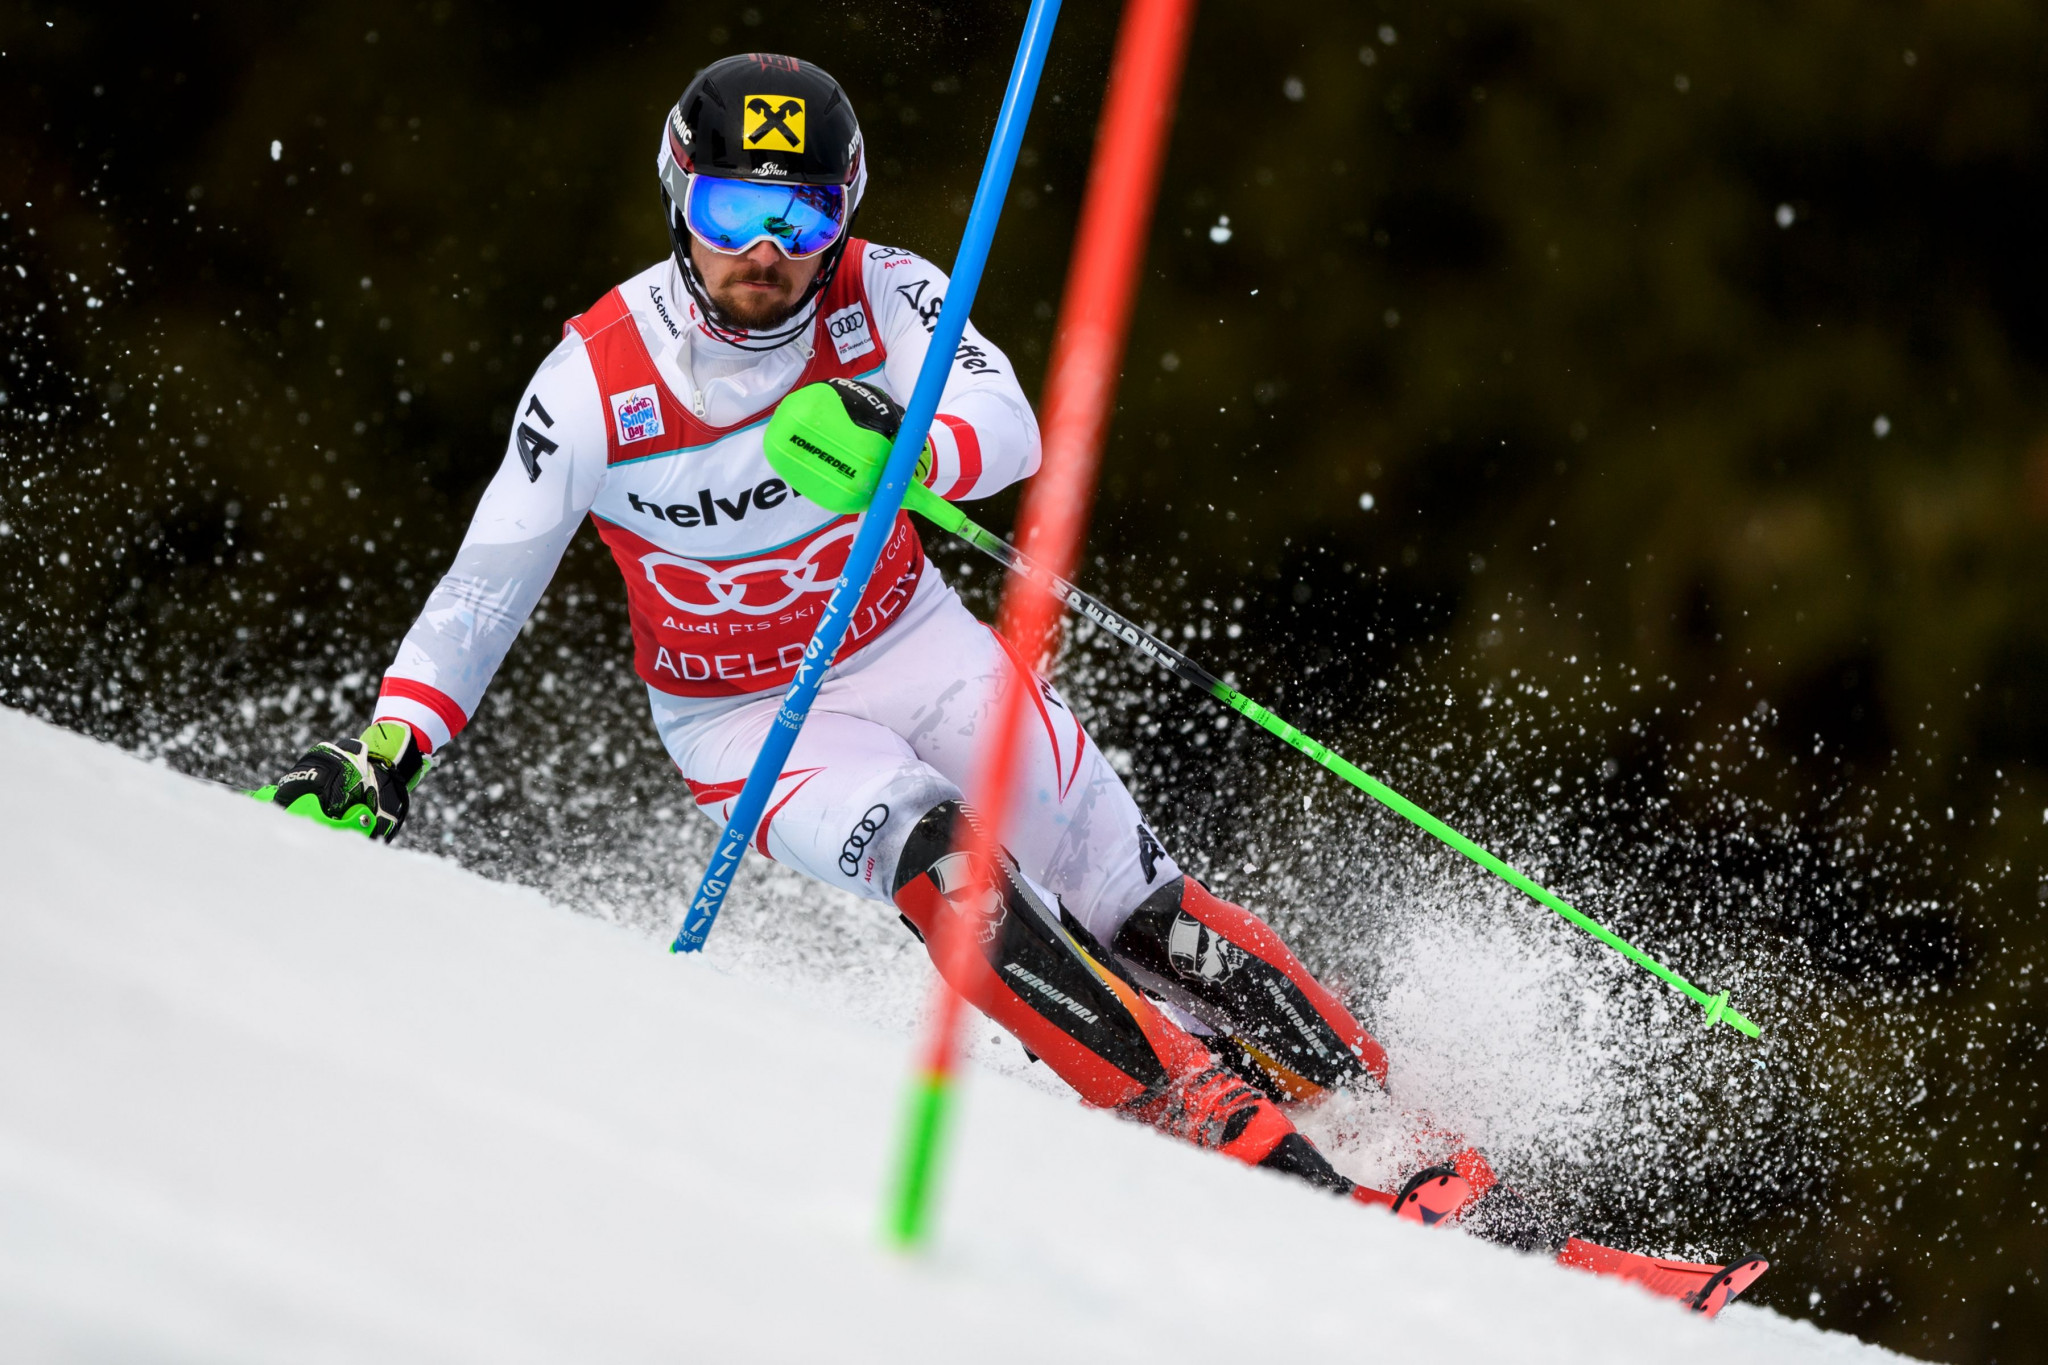 Marcel Hirscher won the men's slalom event at the World Cup leg ©Getty Images